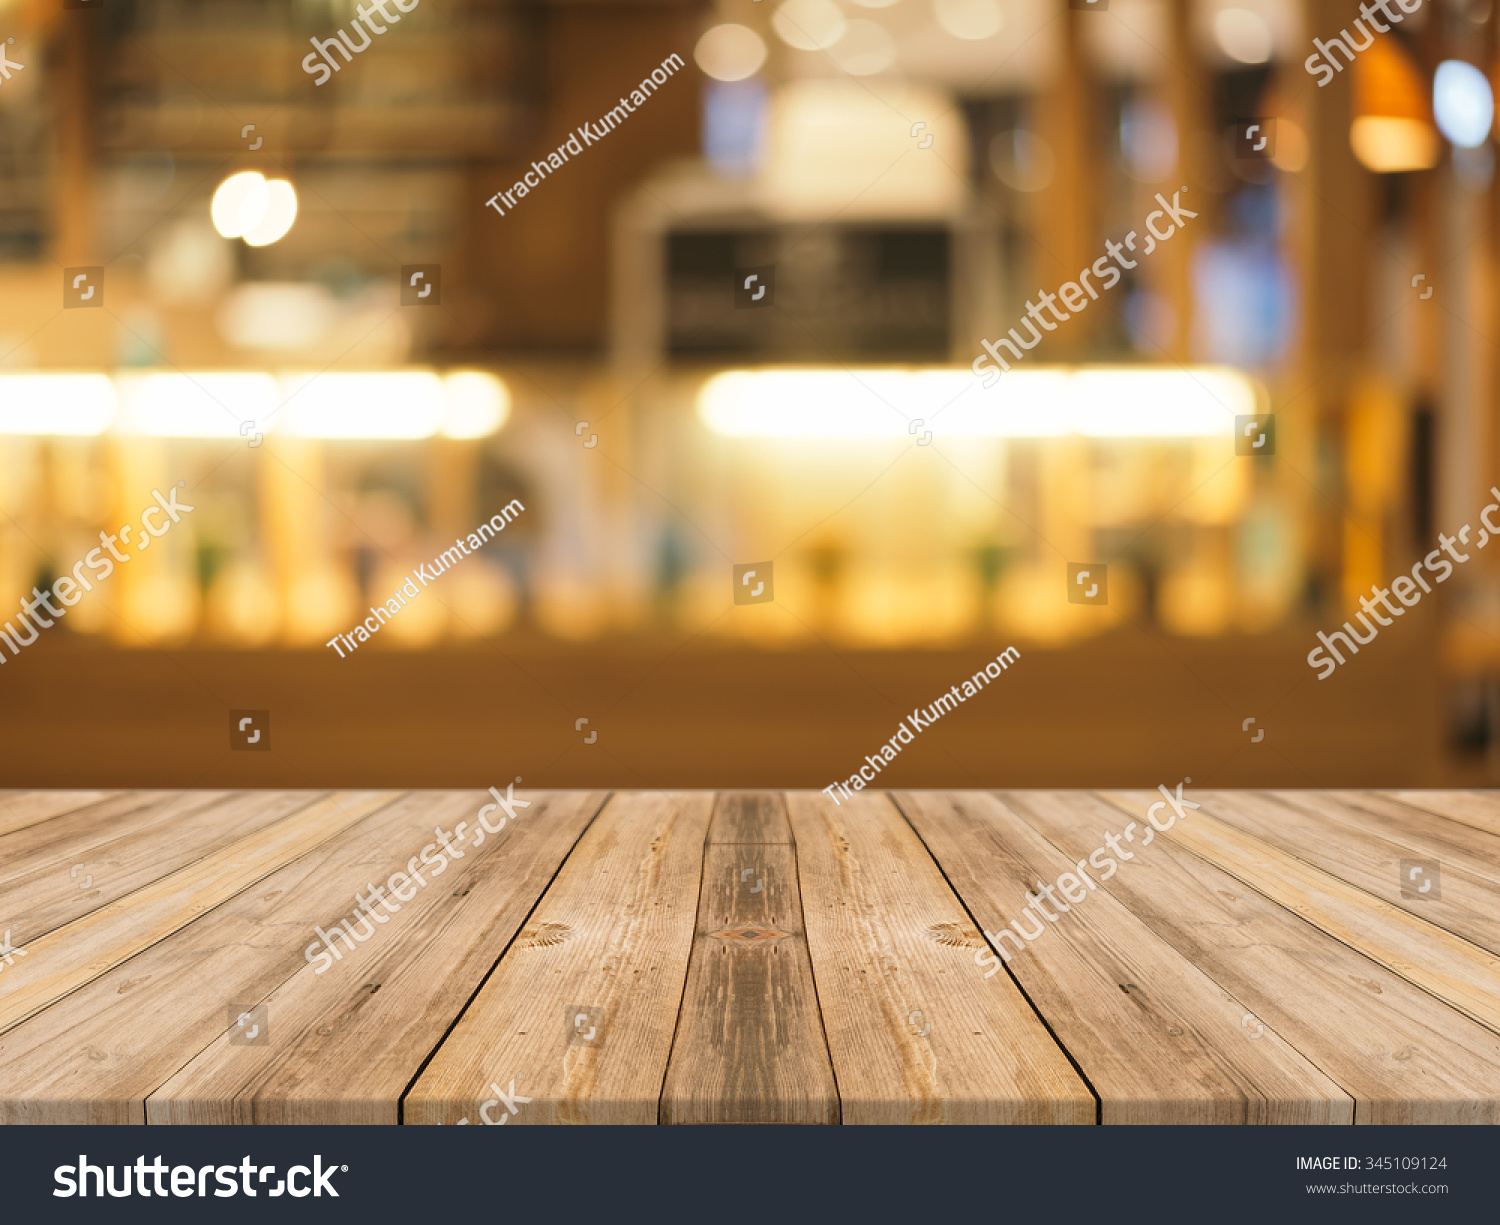 Delighful Wood Table Perspective Wooden Board Empty In Front Of Blurred Background Brown For Decorating